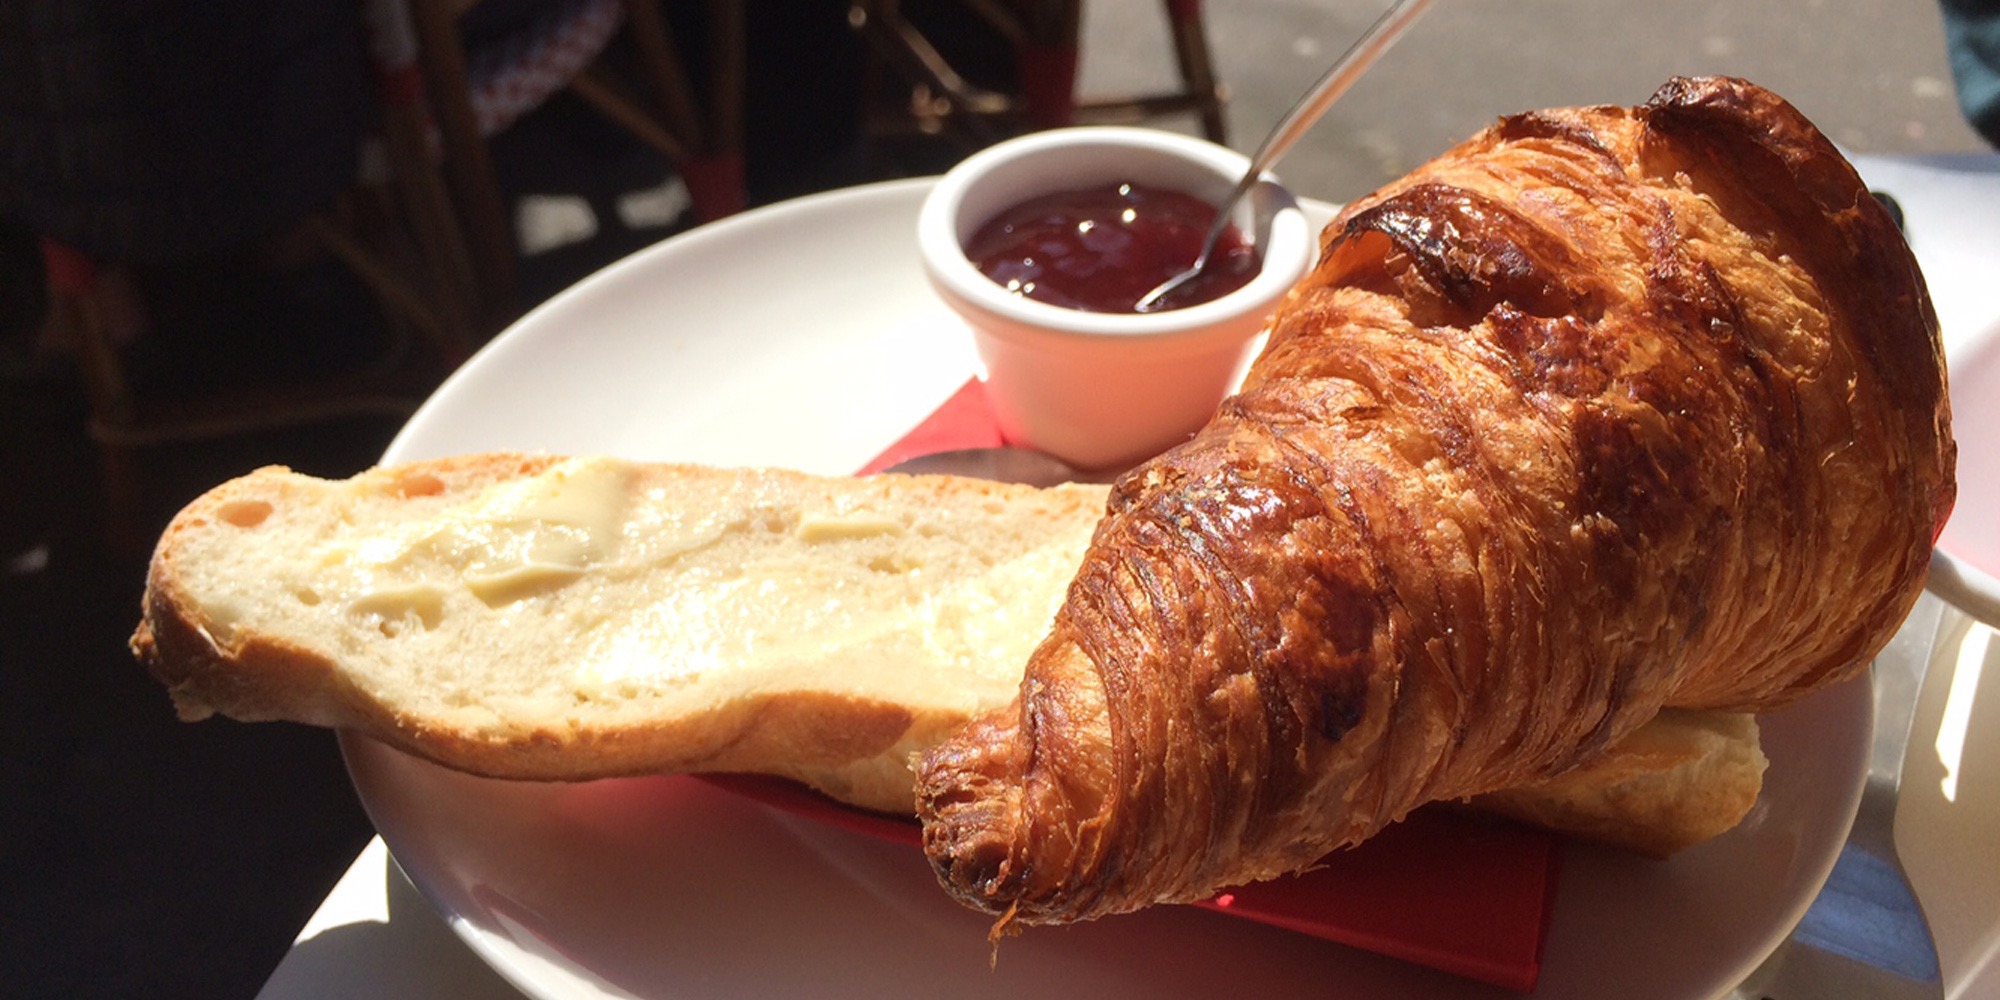 Brunch Le Café Mont Cenis (75018 Paris)